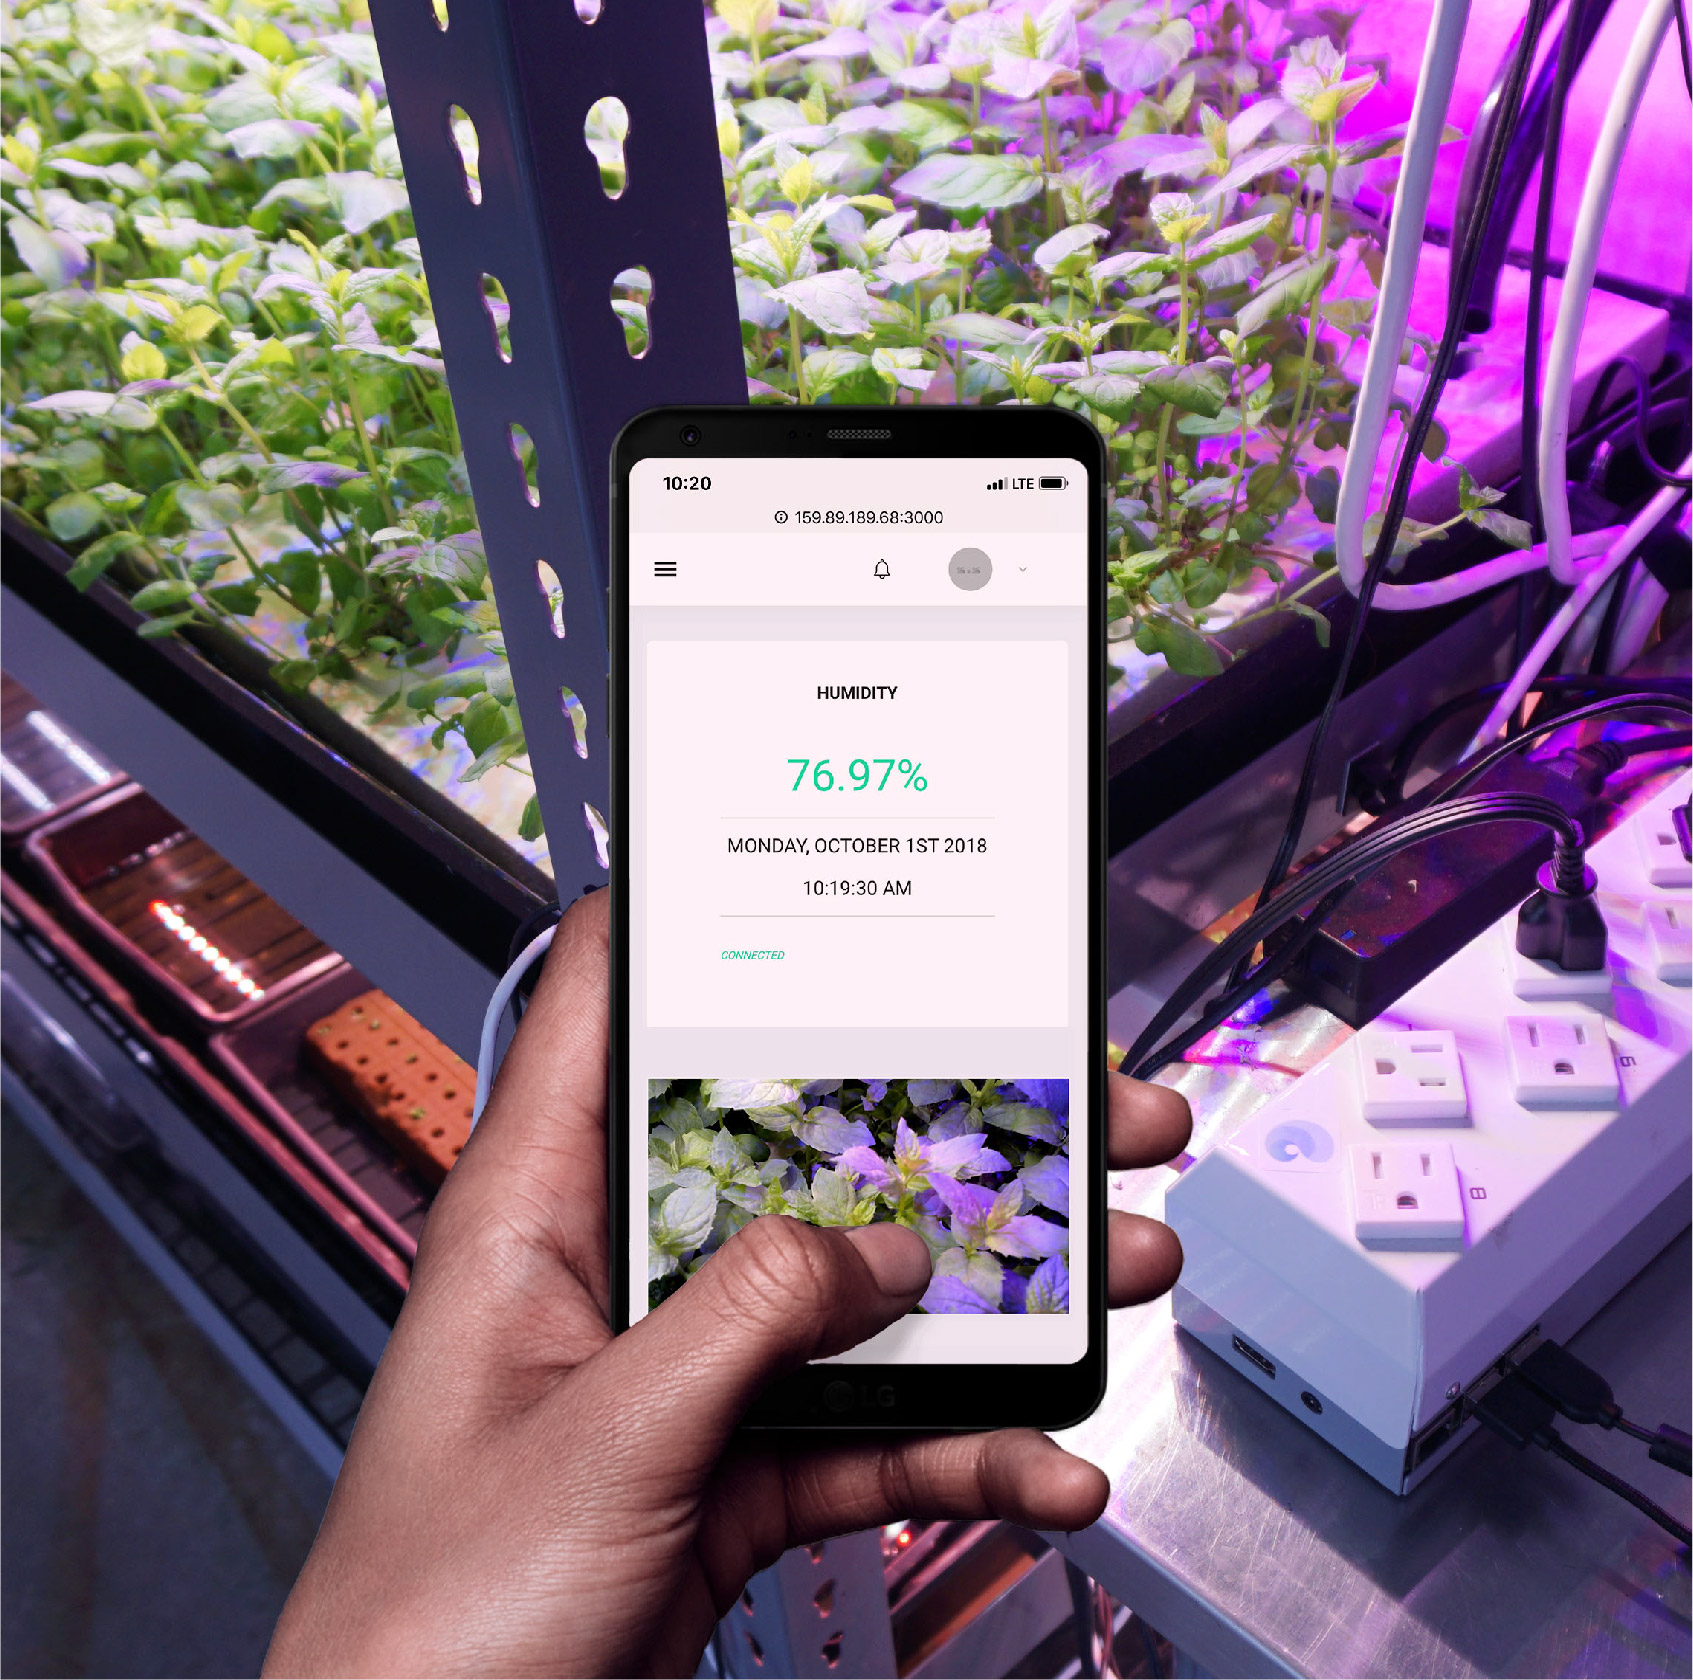 Control your growing system with your smartphone